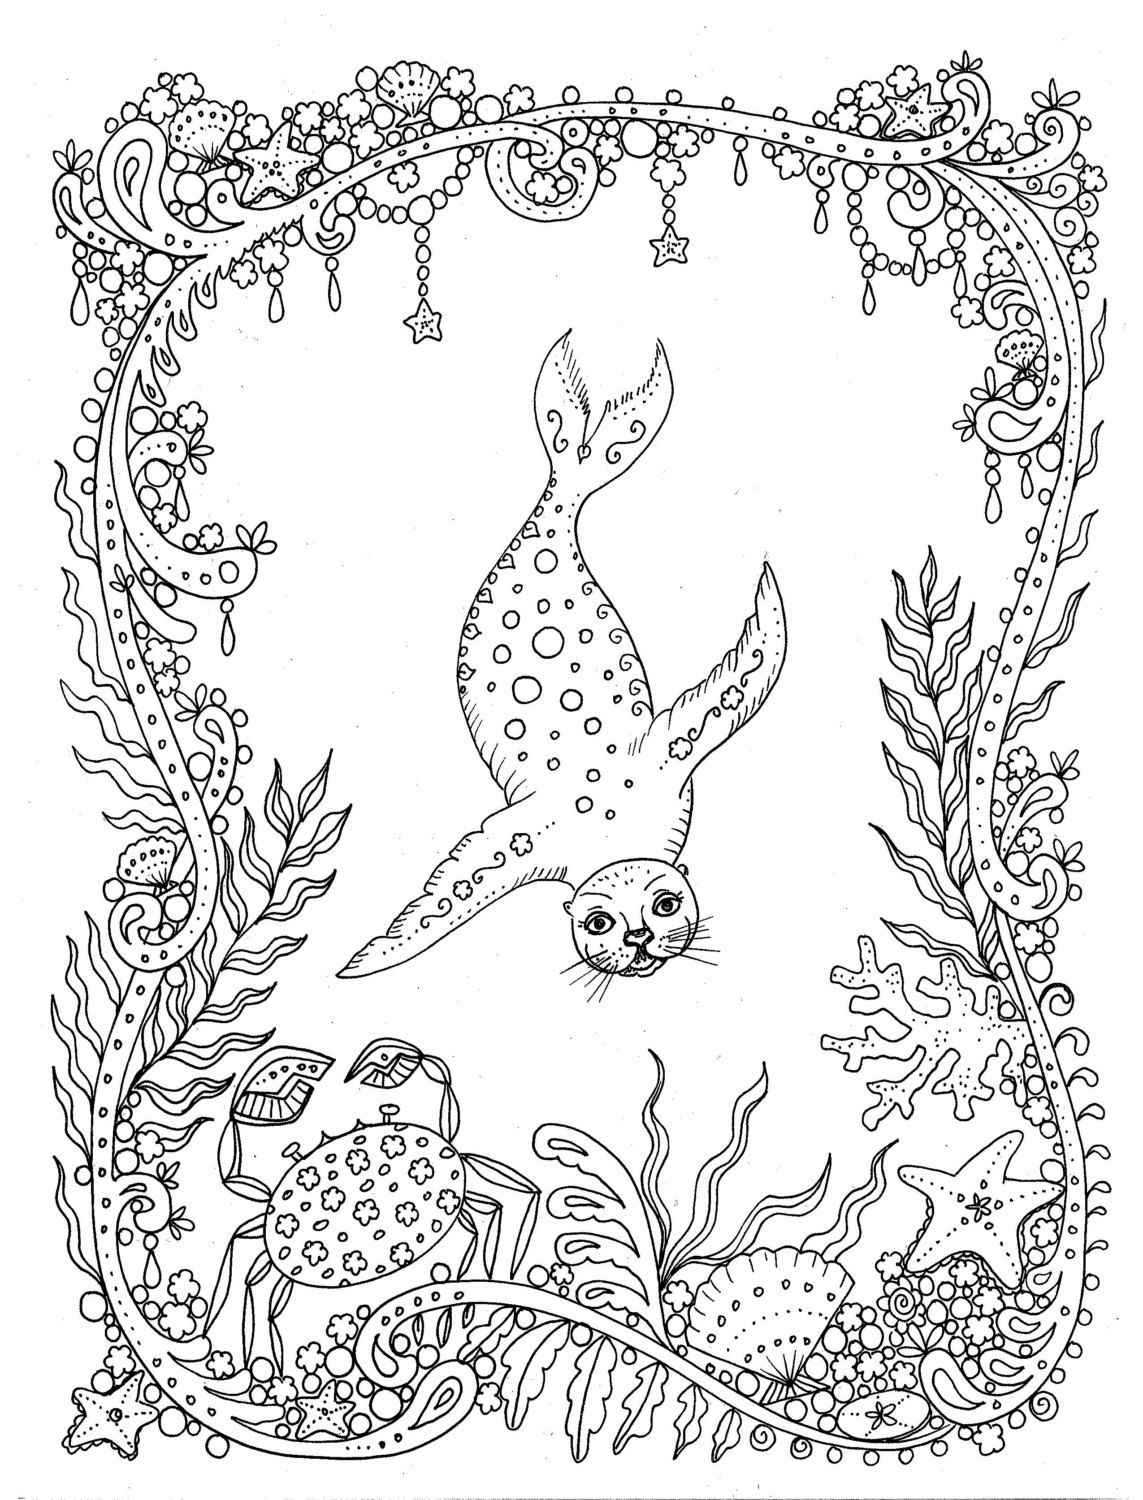 Download Coloring Page Fantasy Seal You Be The Artist Color Etsy Animal Coloring Pages Coloring Pages Coloring Pictures [ 1500 x 1143 Pixel ]